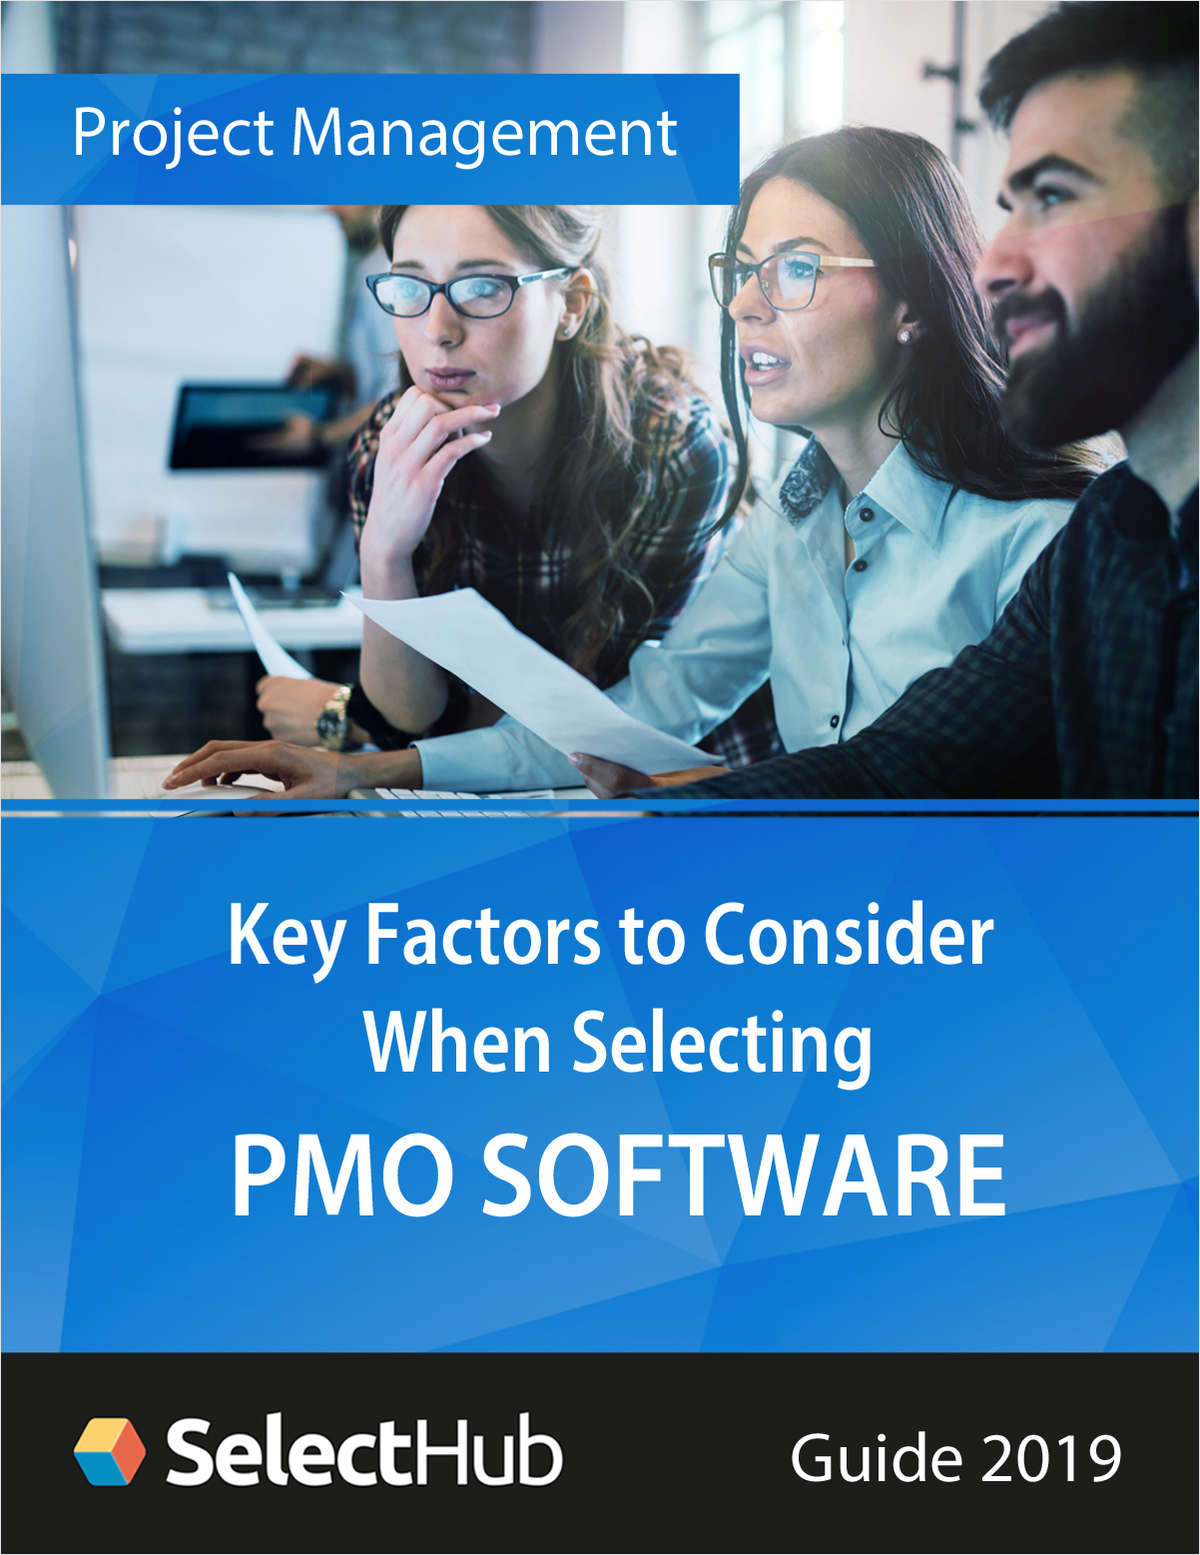 PMO Software: What You Need to Know Before Buying